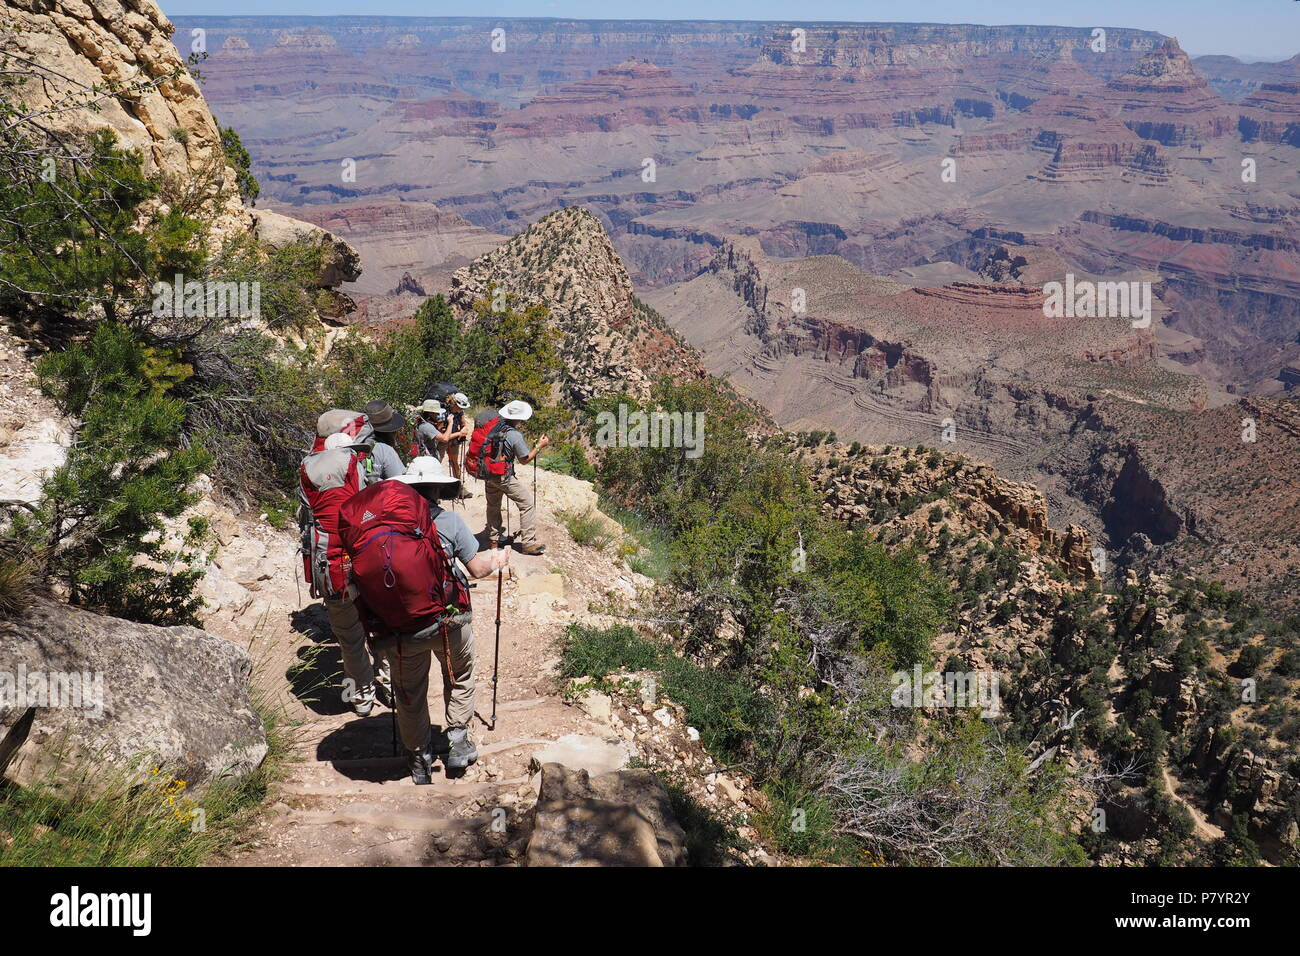 Backpackers descending the Grandview Trail on the way to Horseshoe Mesa in Grand Canyon National Park, Arizona, United States. - Stock Image